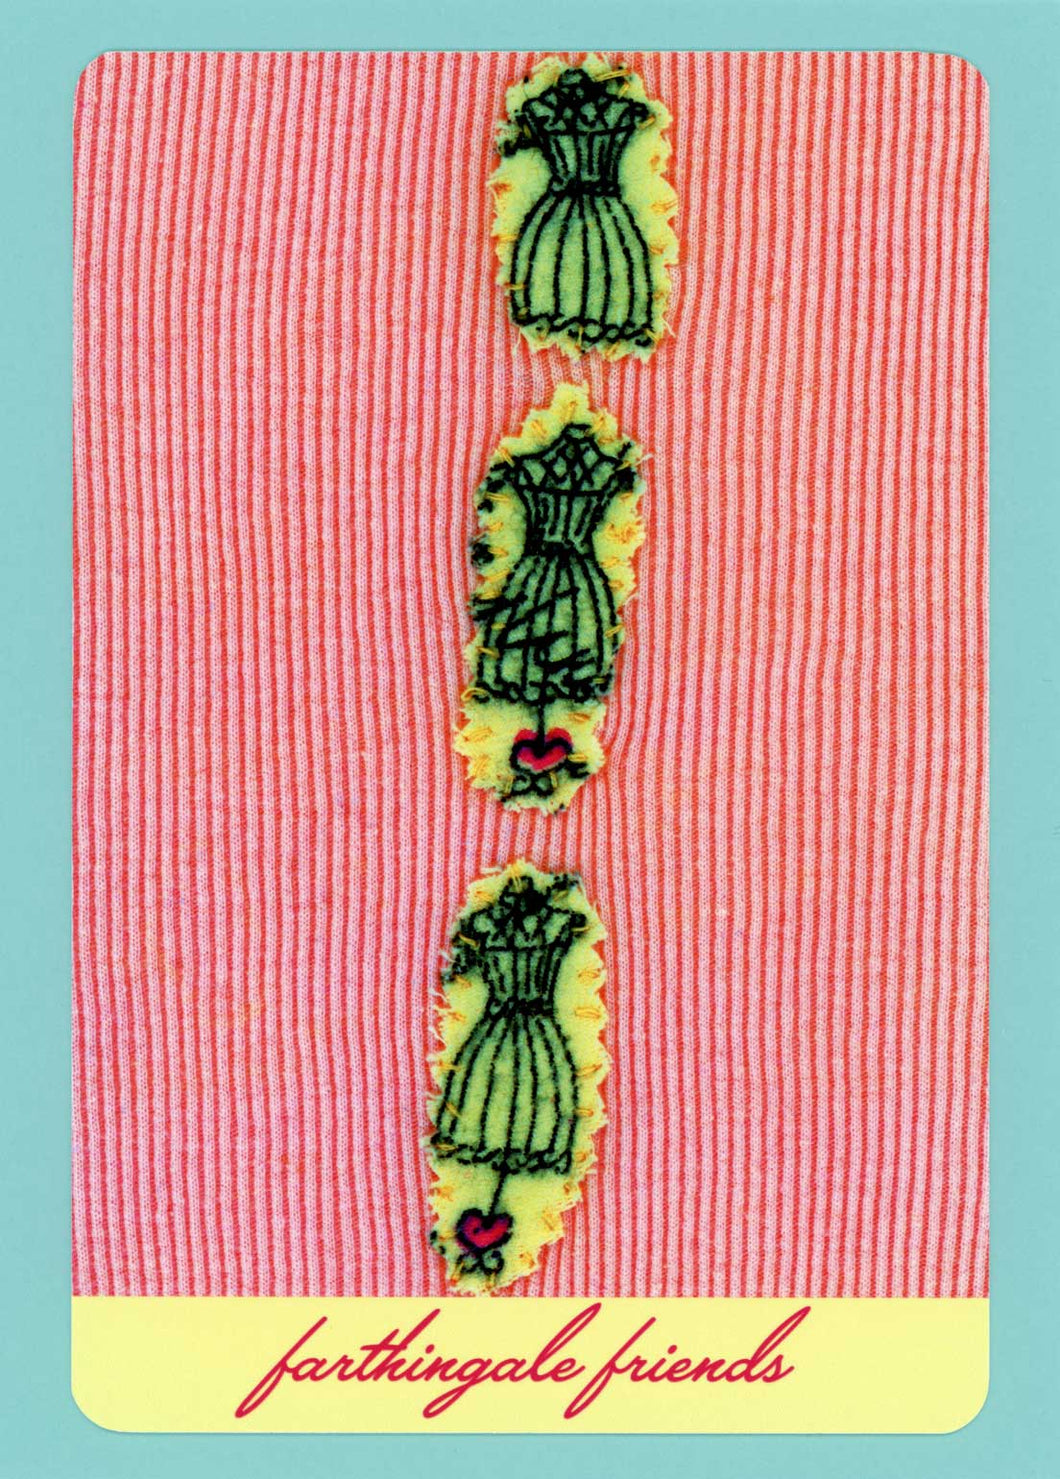 Farthingale Friends, Cute, Colorful, Whimsical, Unique, Fun, Collectible, Happy, Notecard